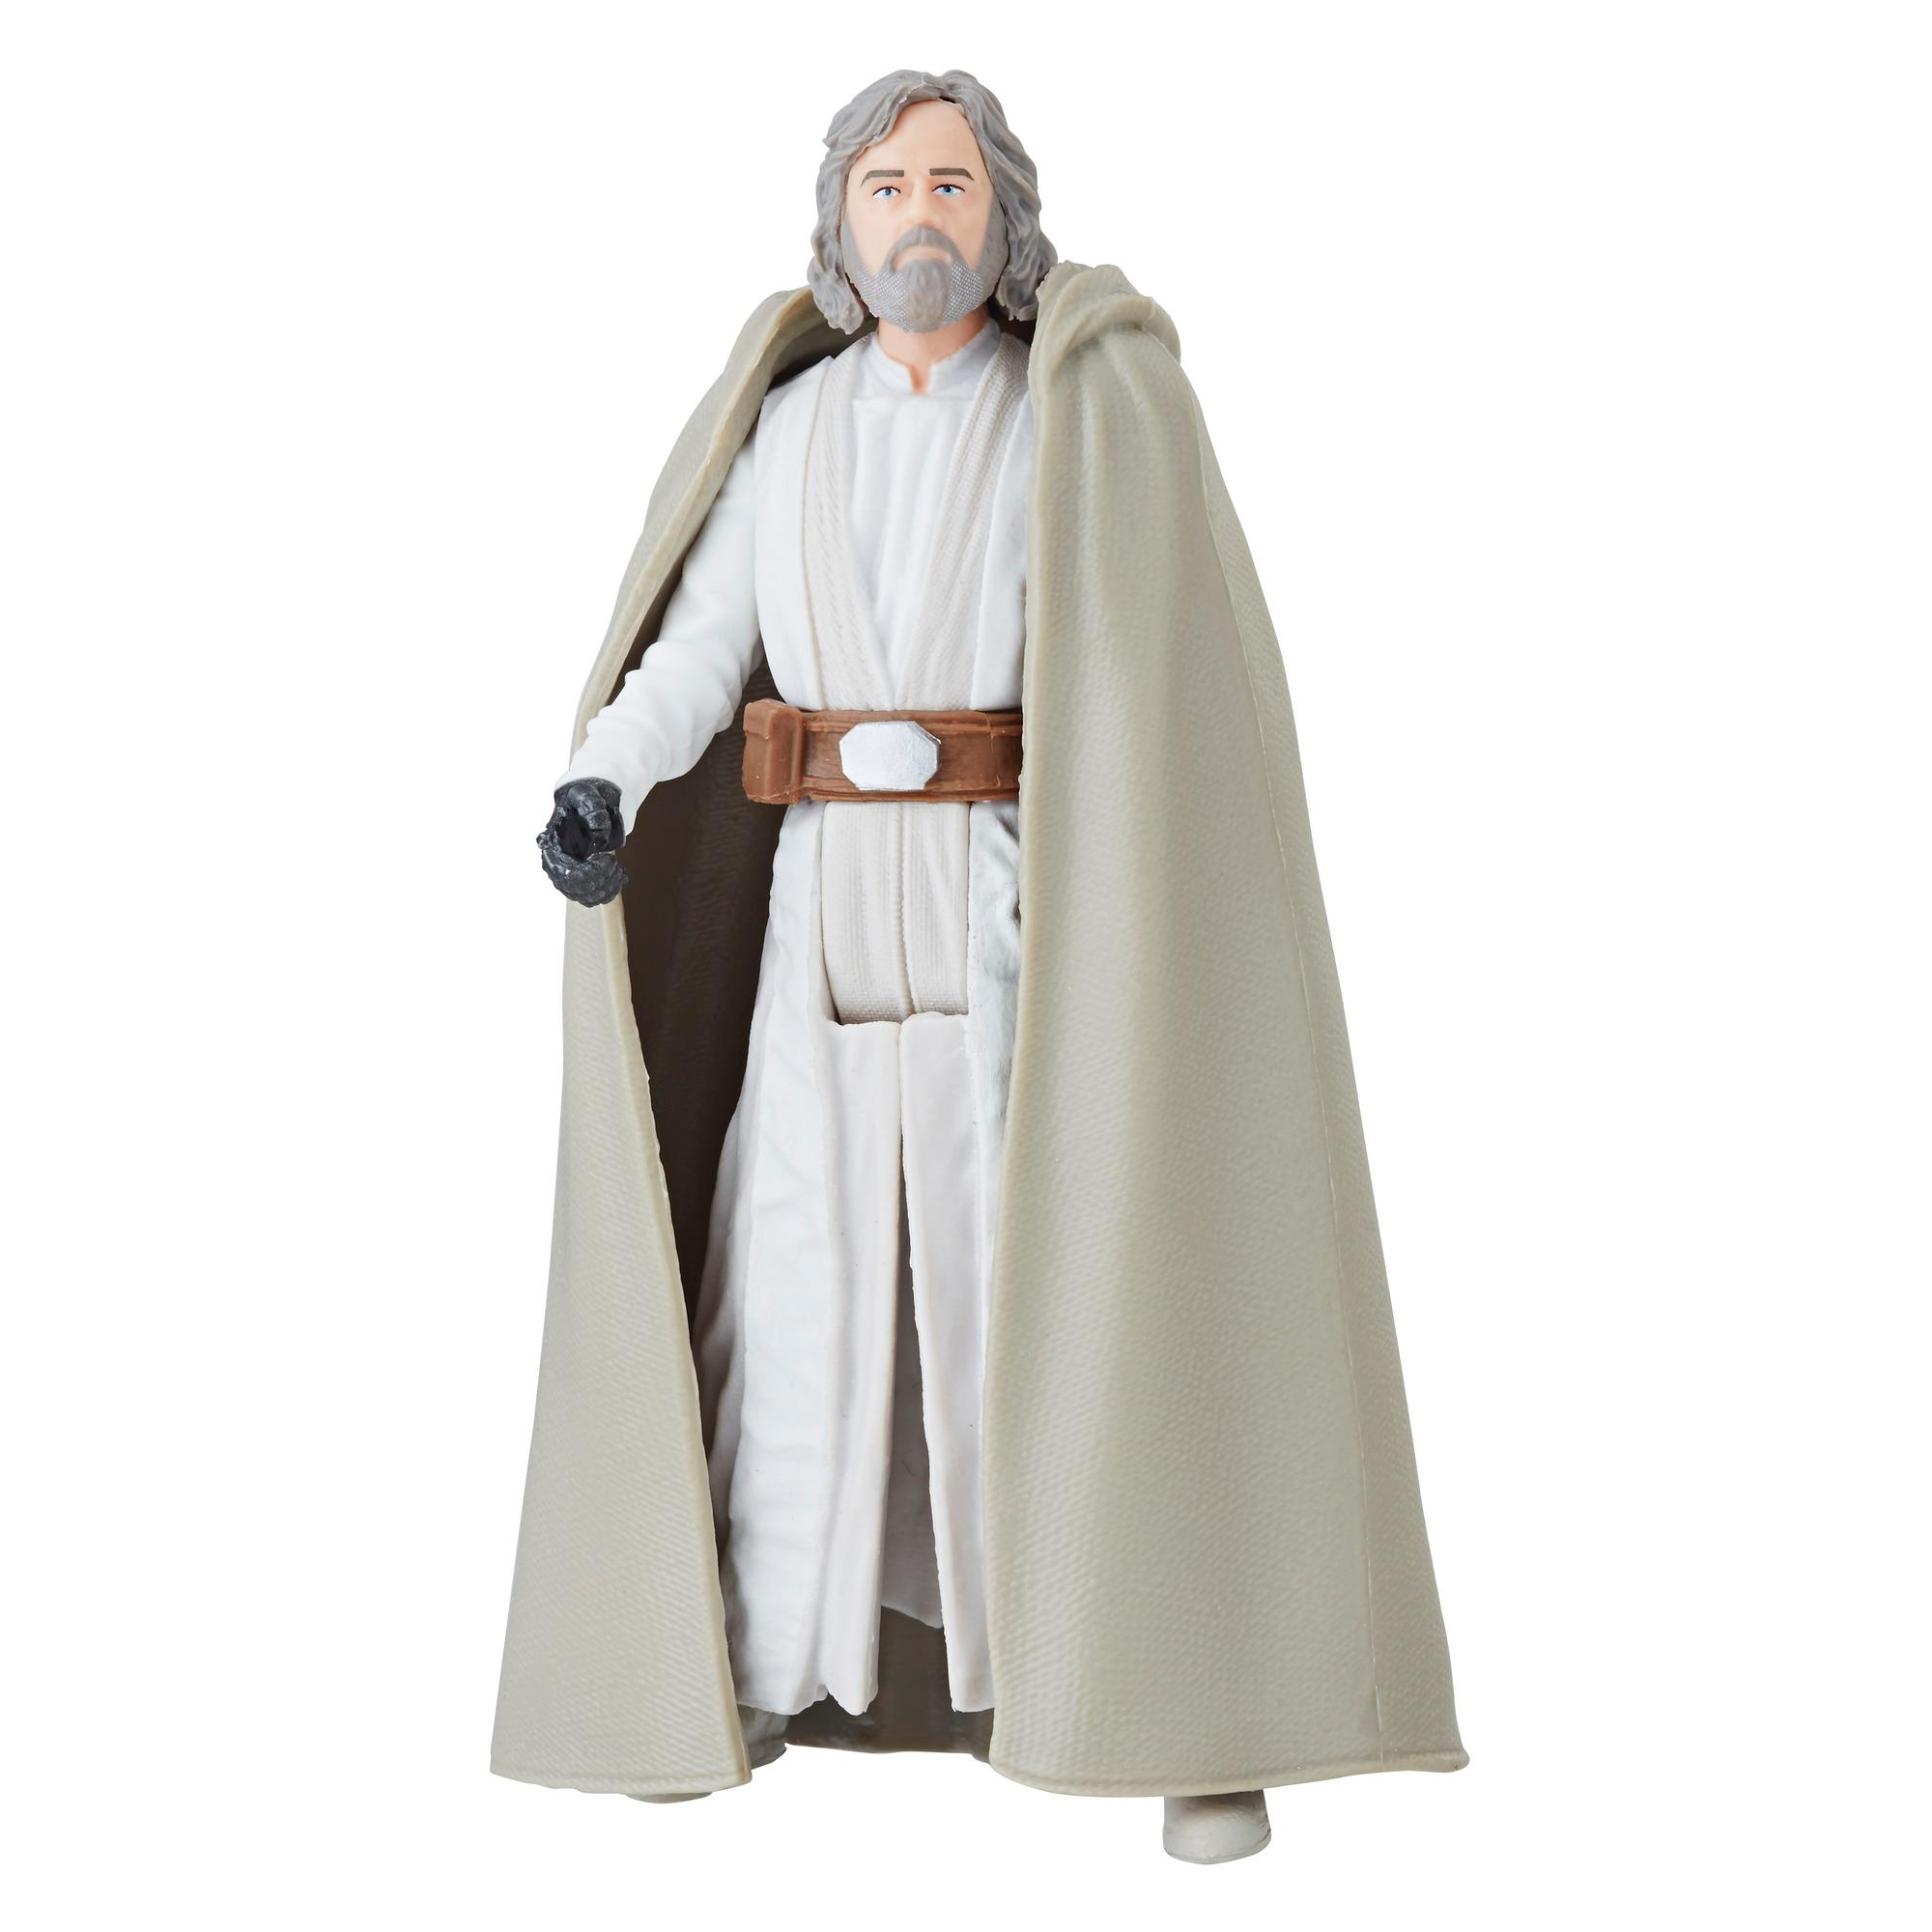 Star Wars Solo Film 3.75 FORCE LINK 2.0 Figur Luke Skywalker